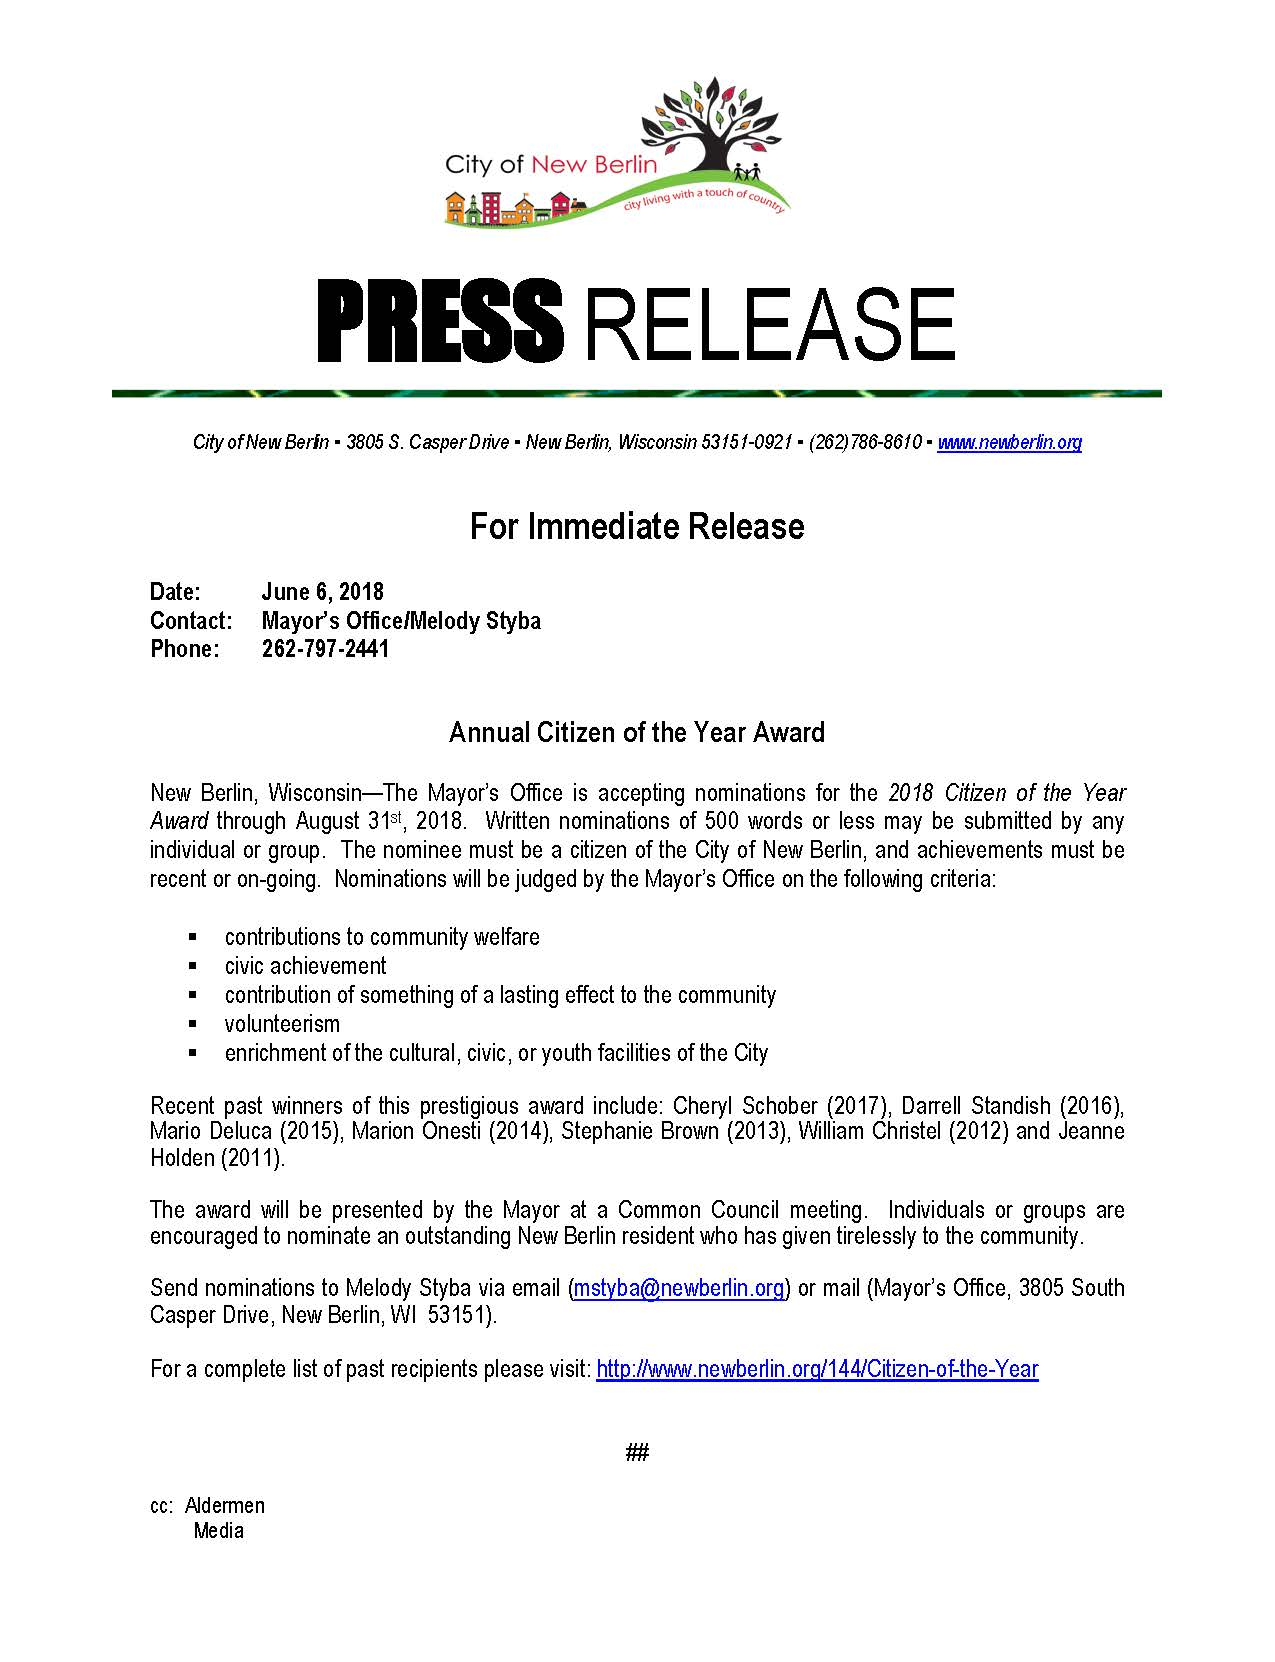 Press-Release-Seeking nominations 2018